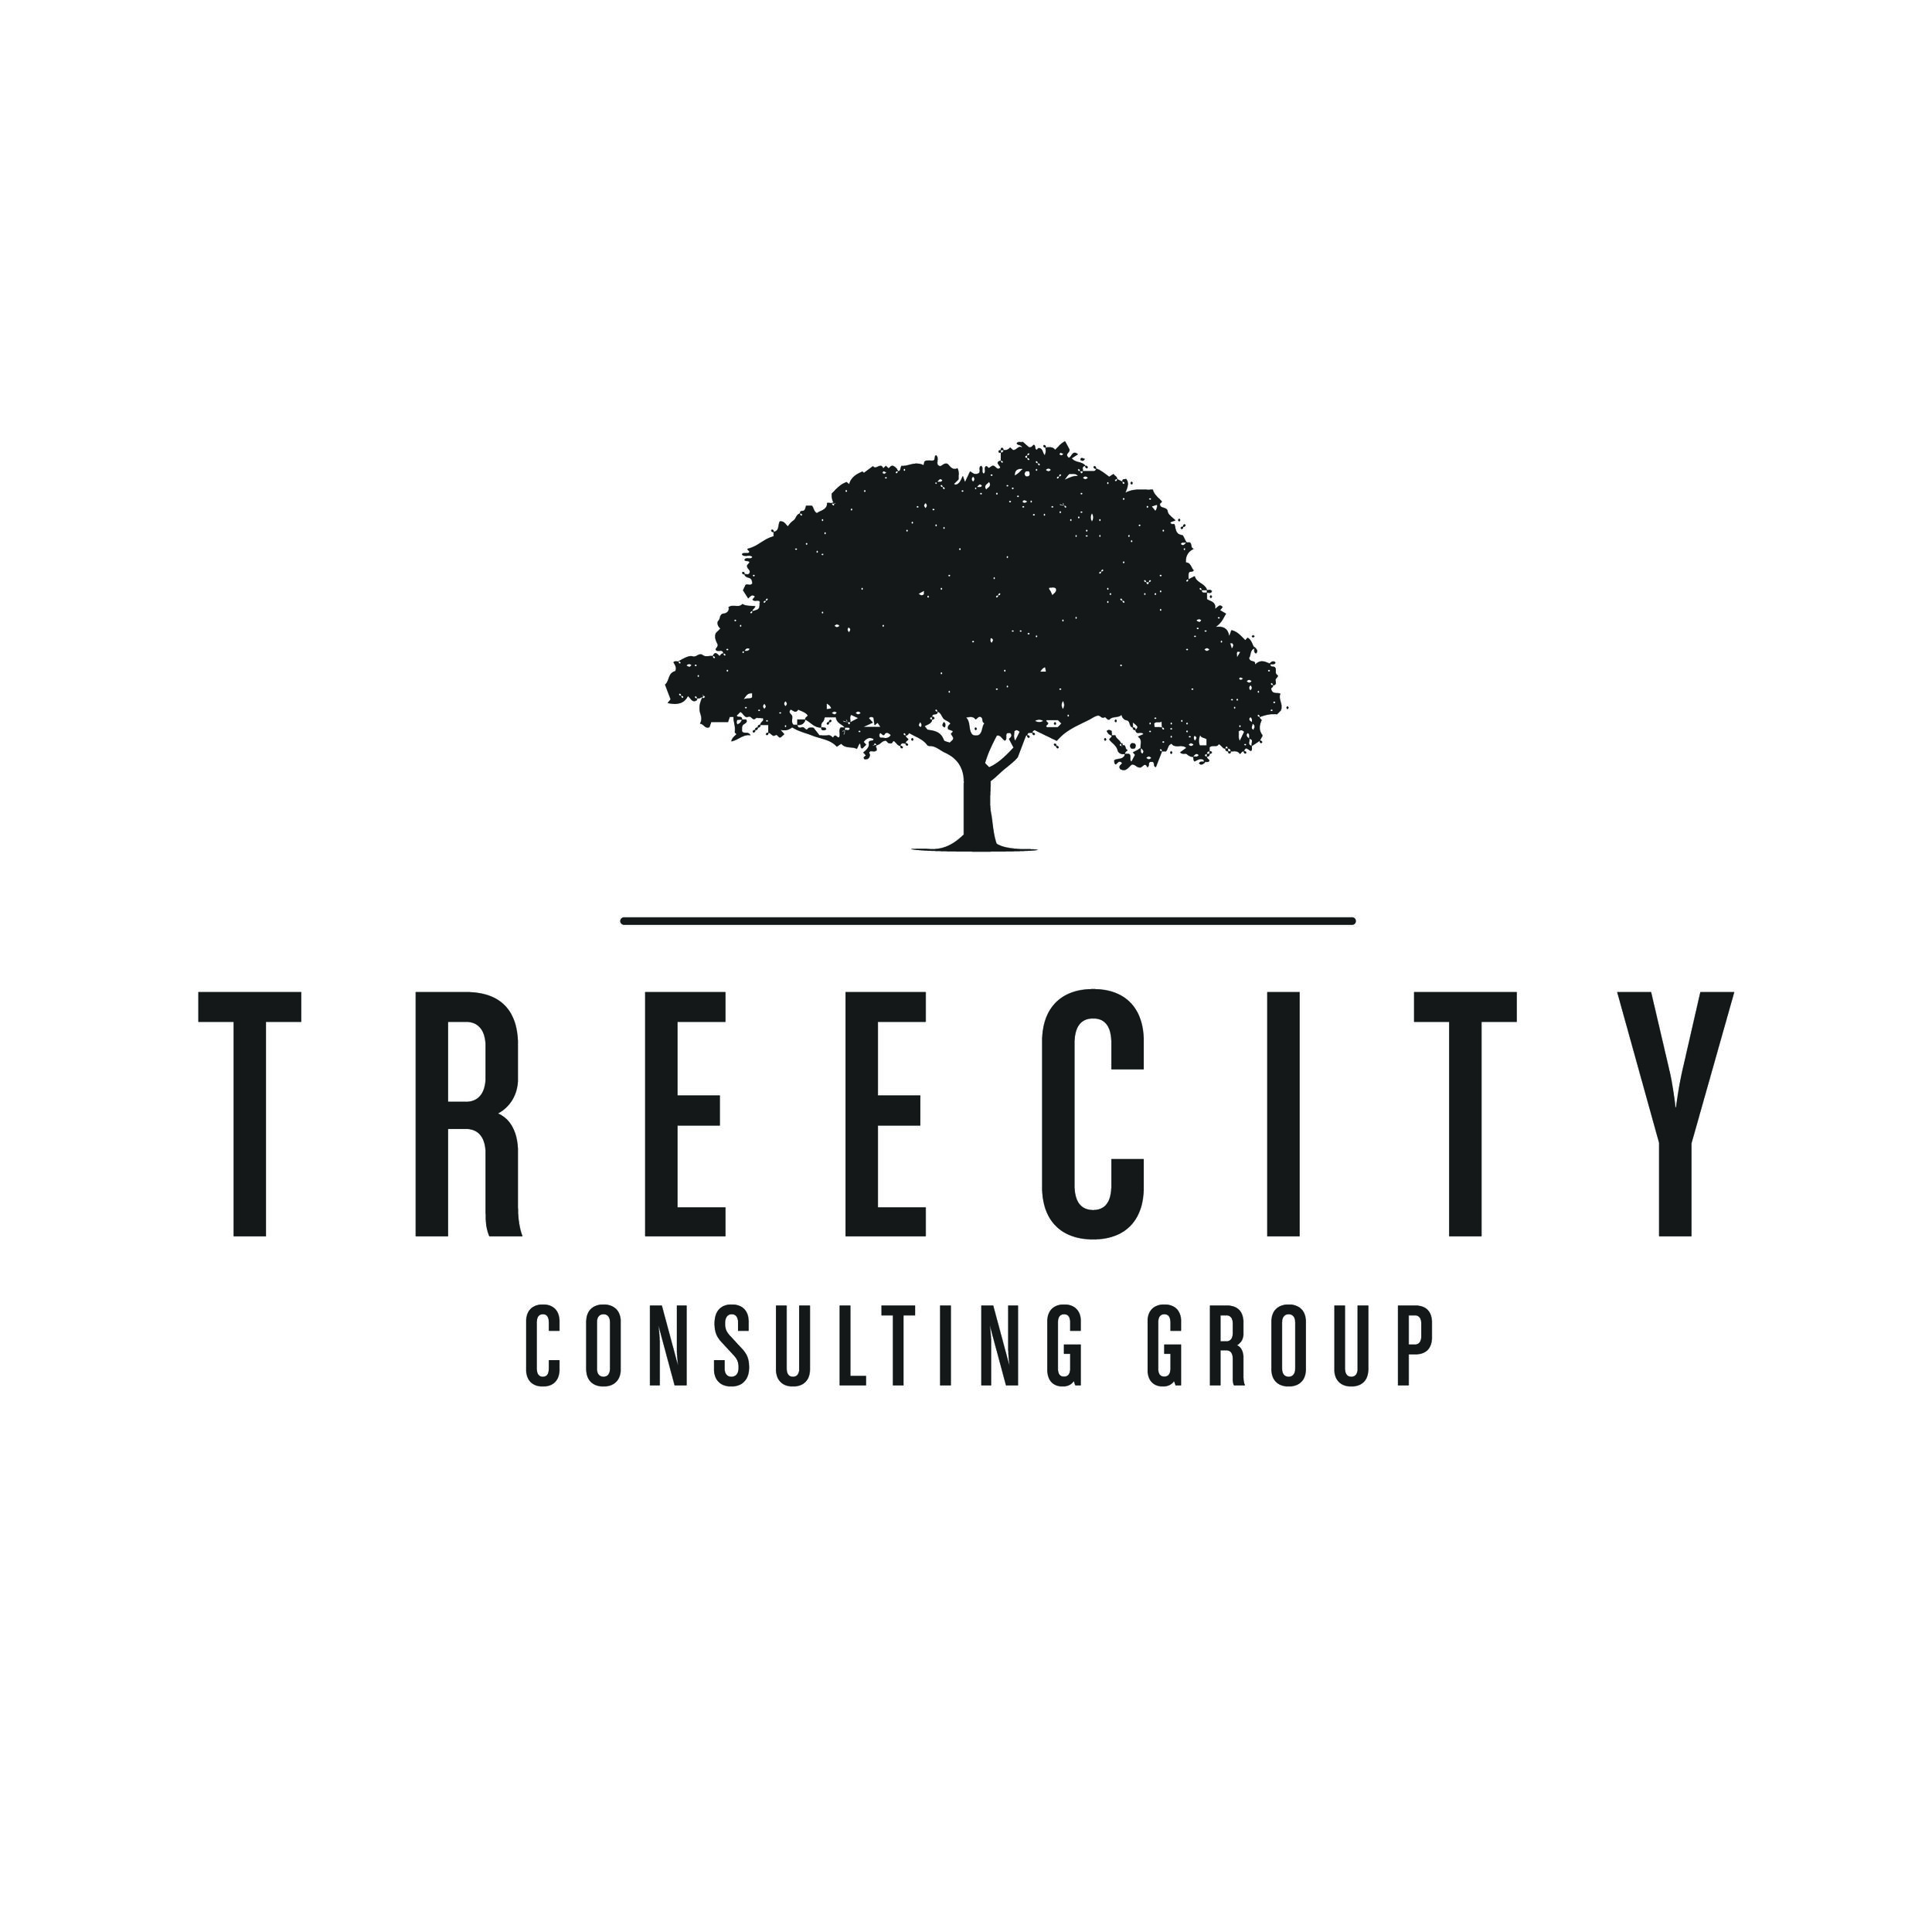 TreeCity Consulting Group - This project was for a serious, corporate group which required a logo whose look reflected that. It was important to hit a tone that could convey authority and feel well-established, while still maintaining a welcoming appeal.